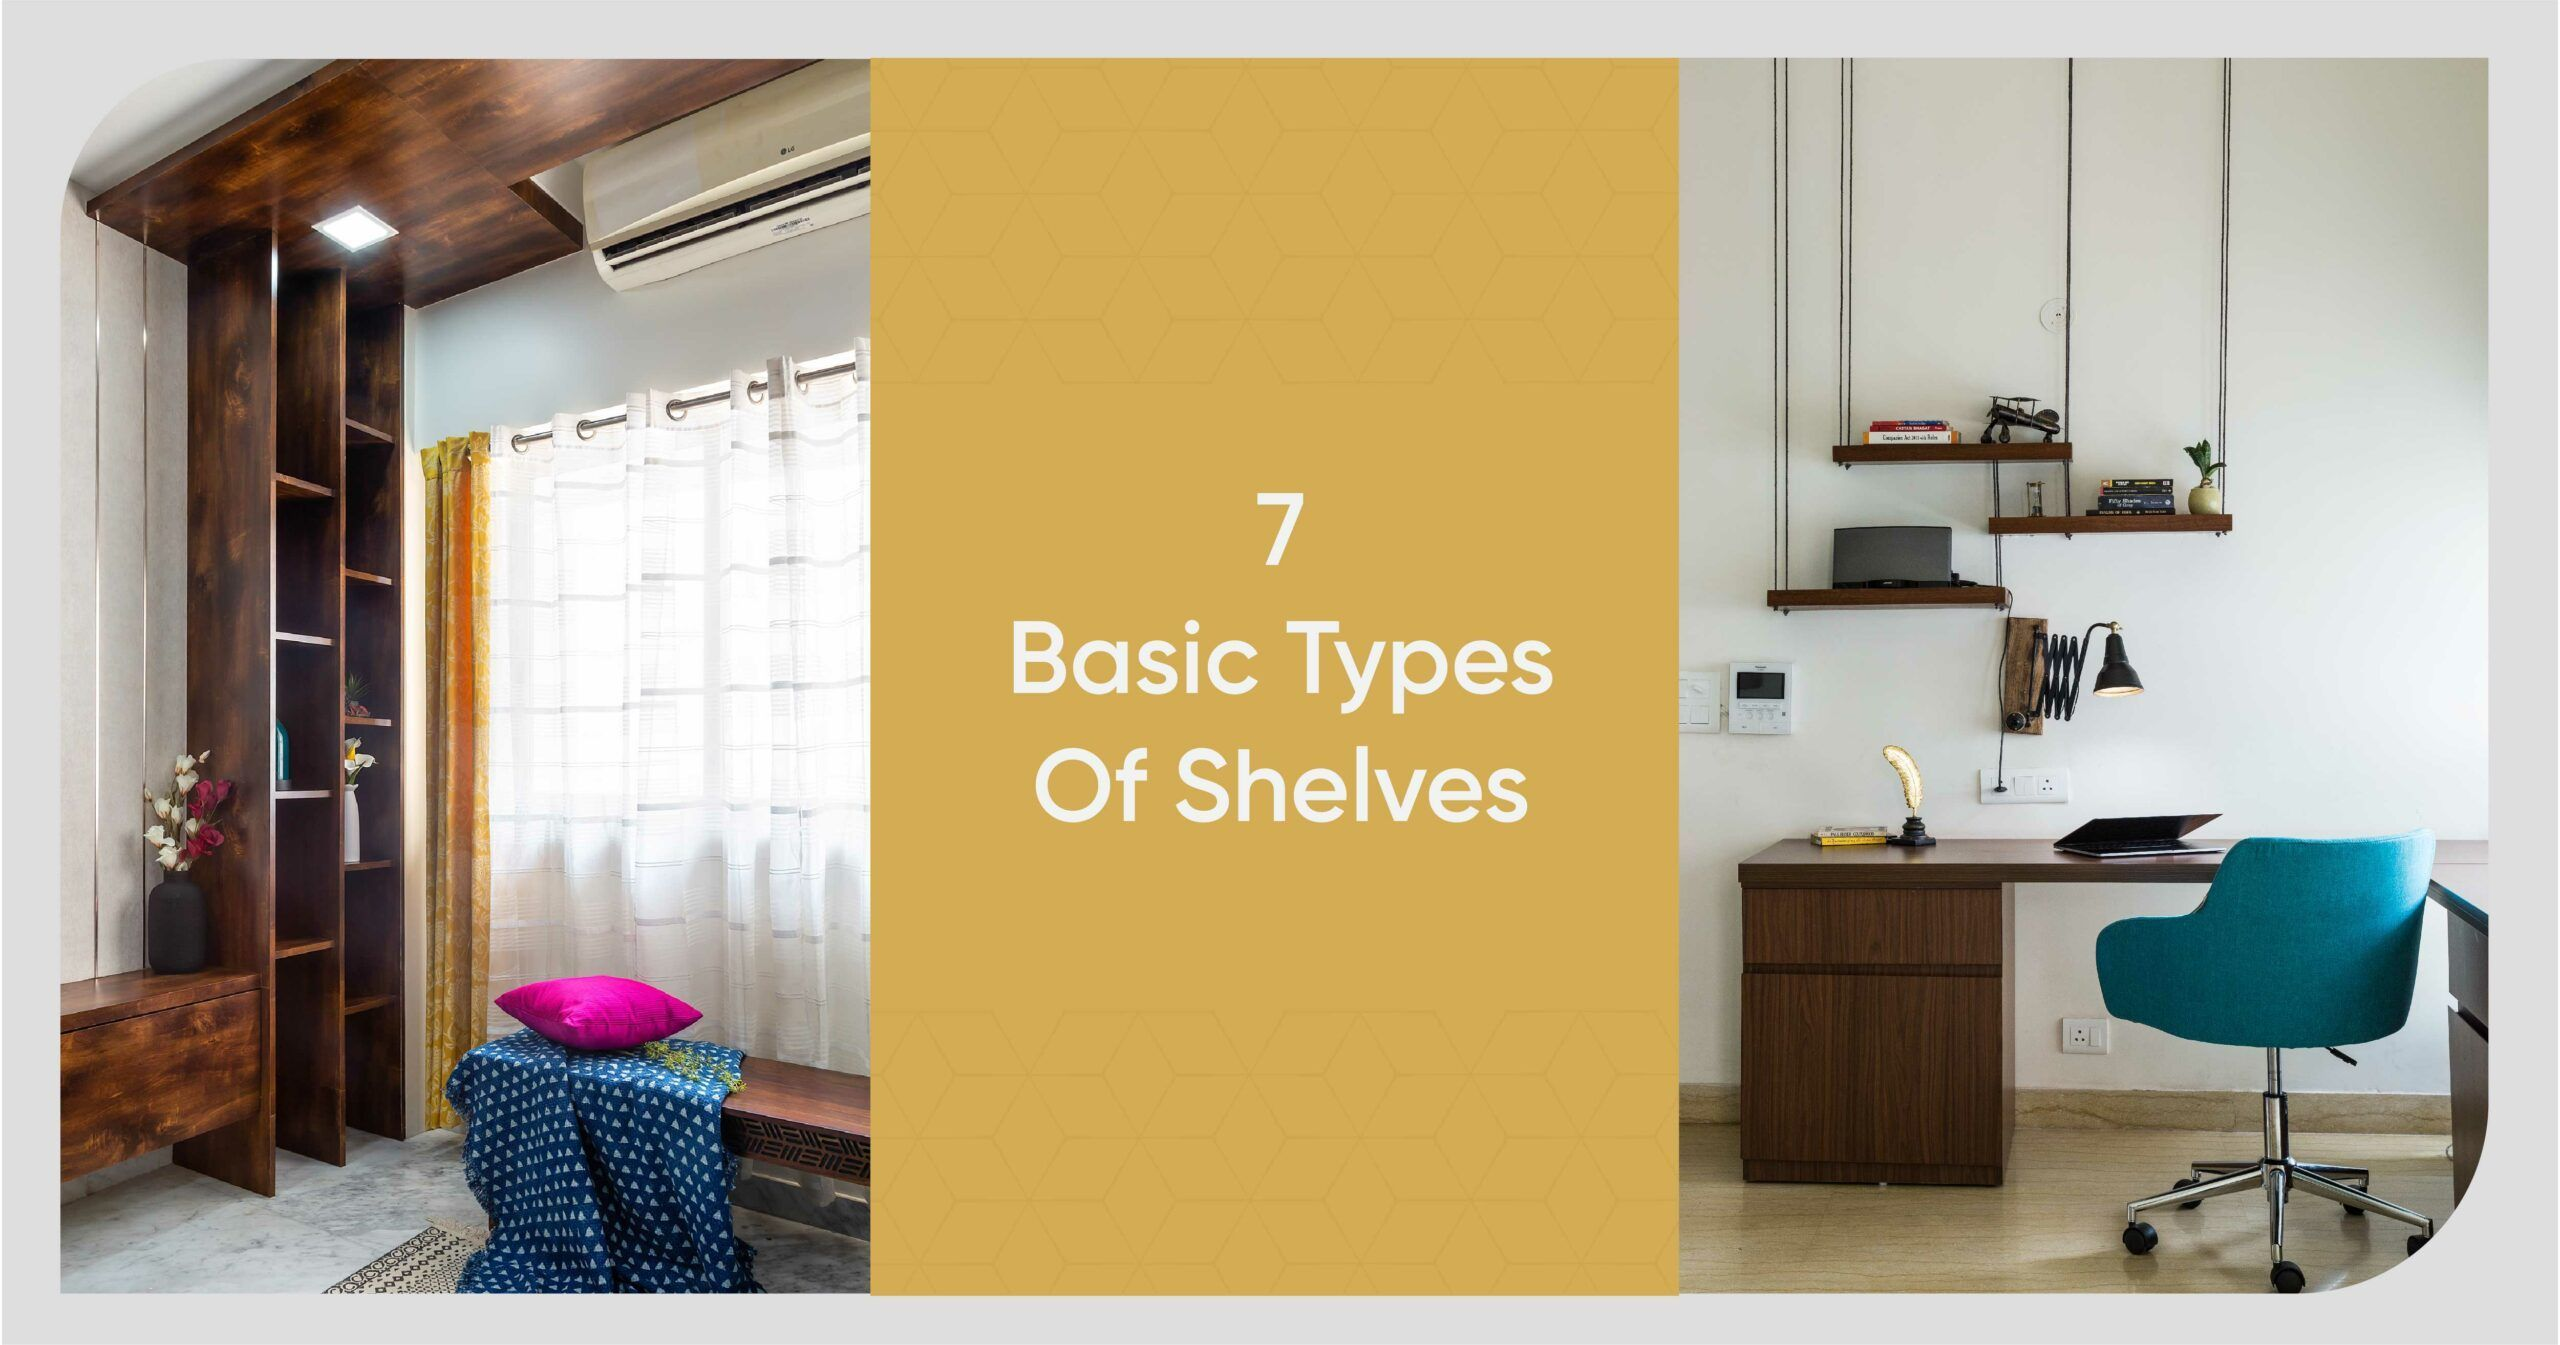 How Many Types of Shelves Can You Name?